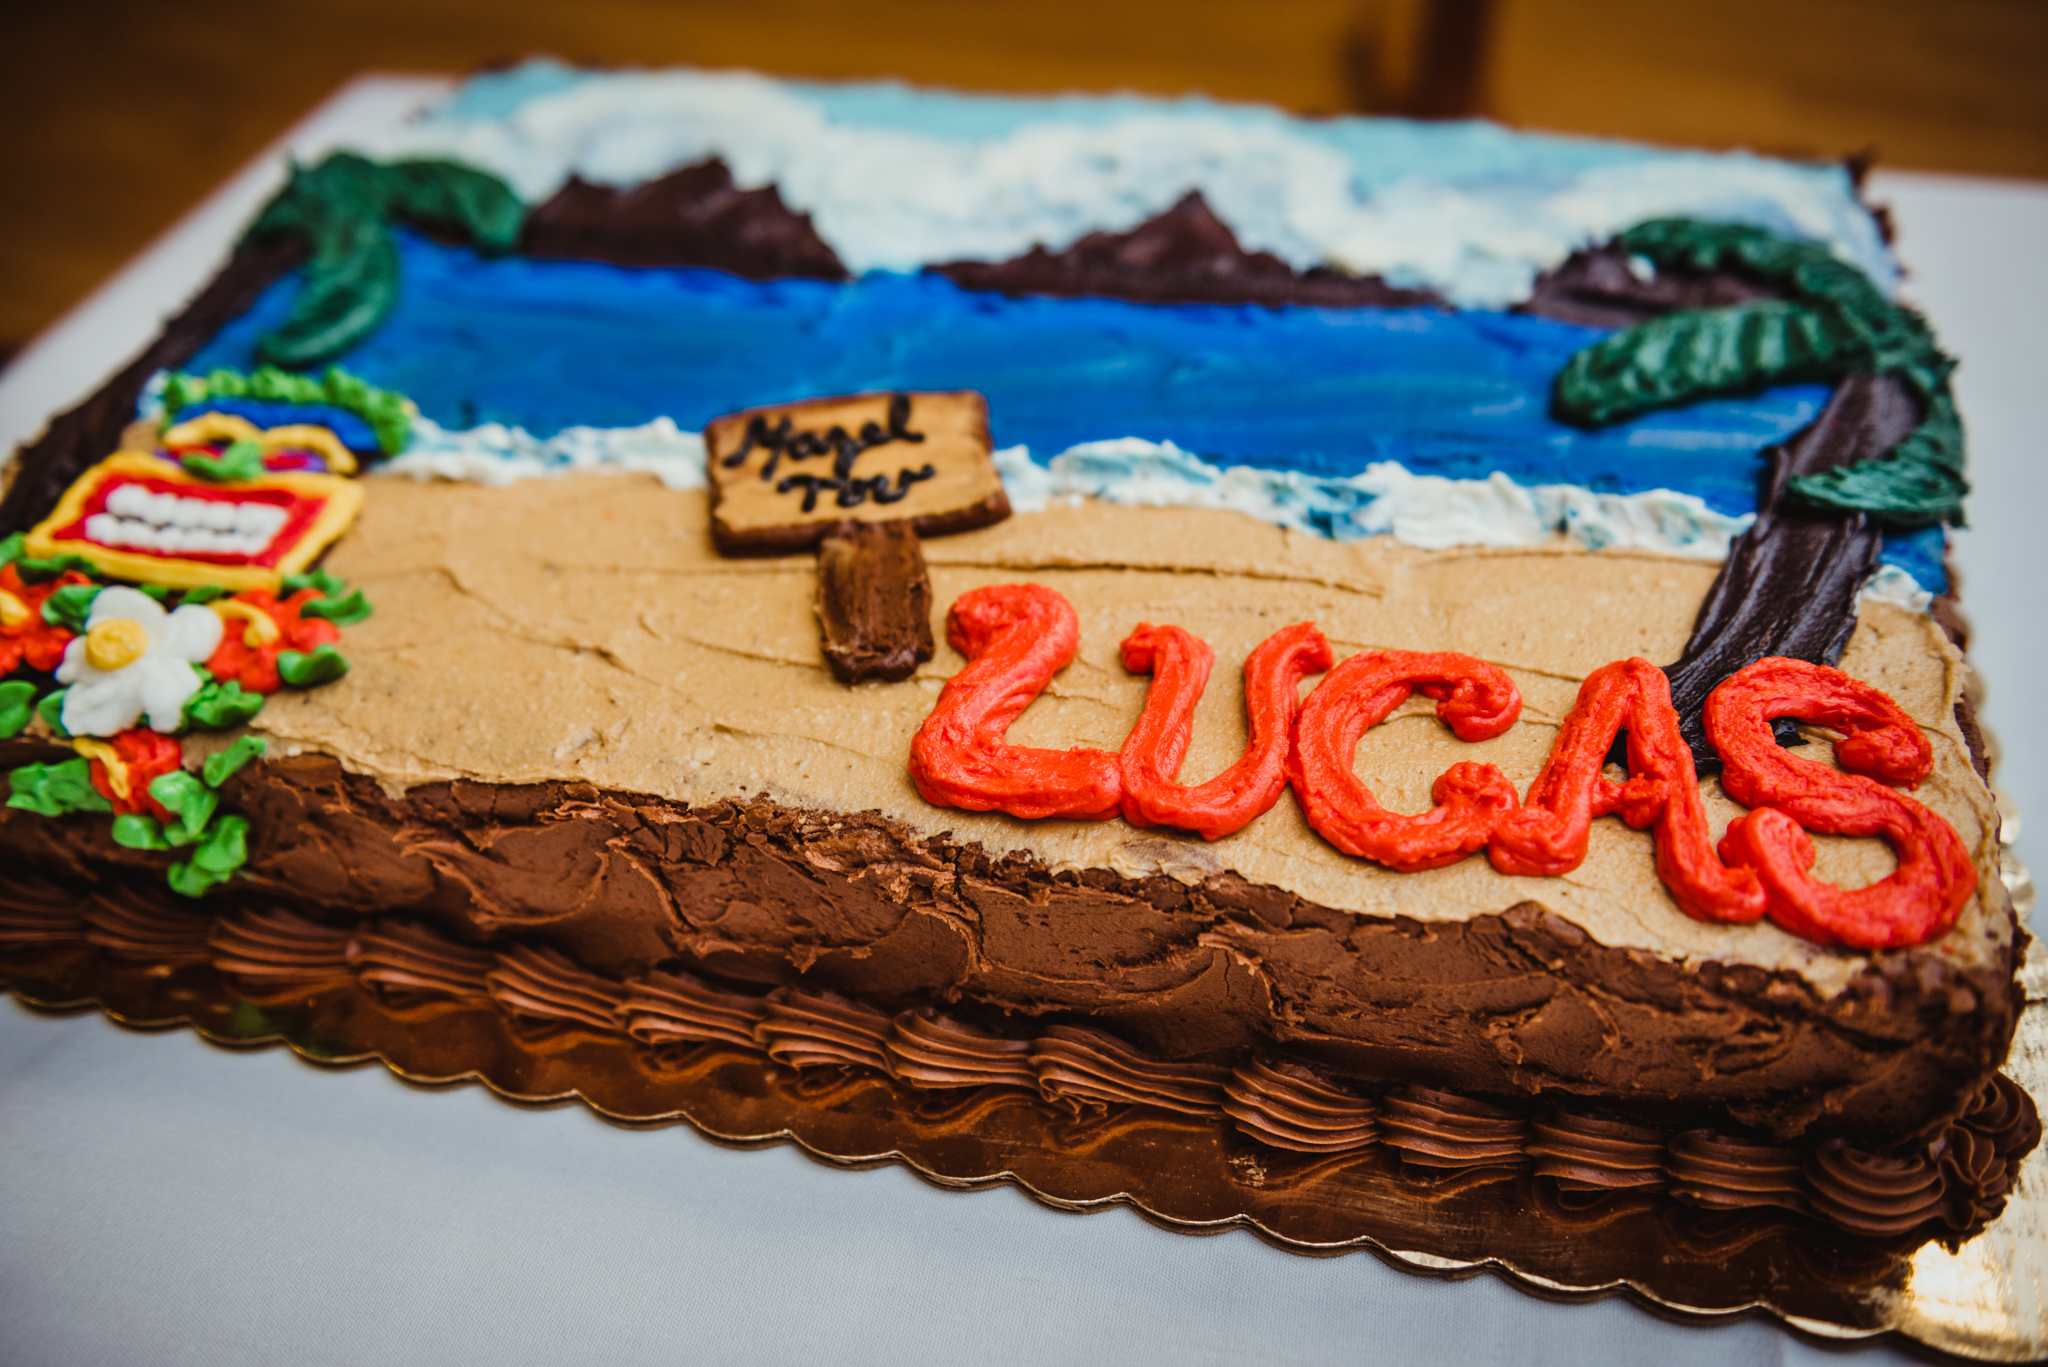 a-gorgeous-luau-cake-made-for-the-mitzvah-celebration.jpg